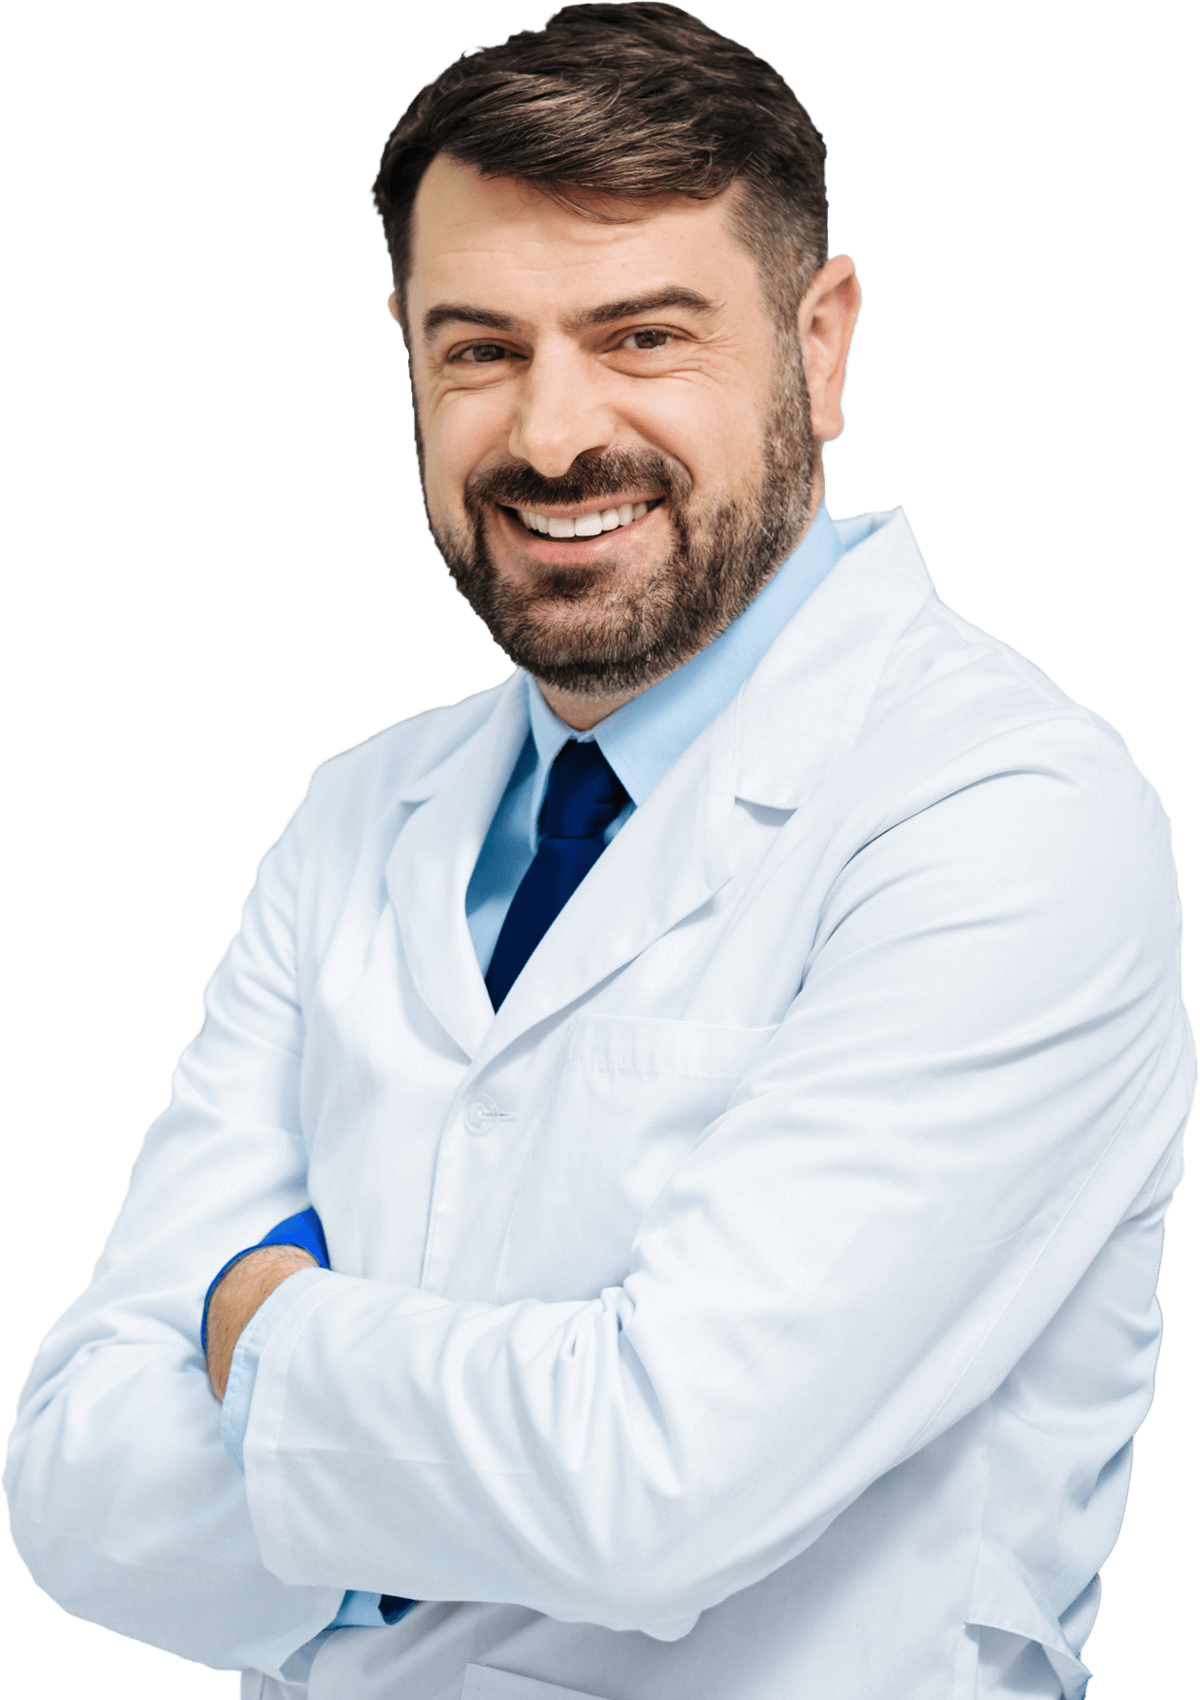 https://biconmexico.com/wp-content/uploads/2020/02/doctor-2.png